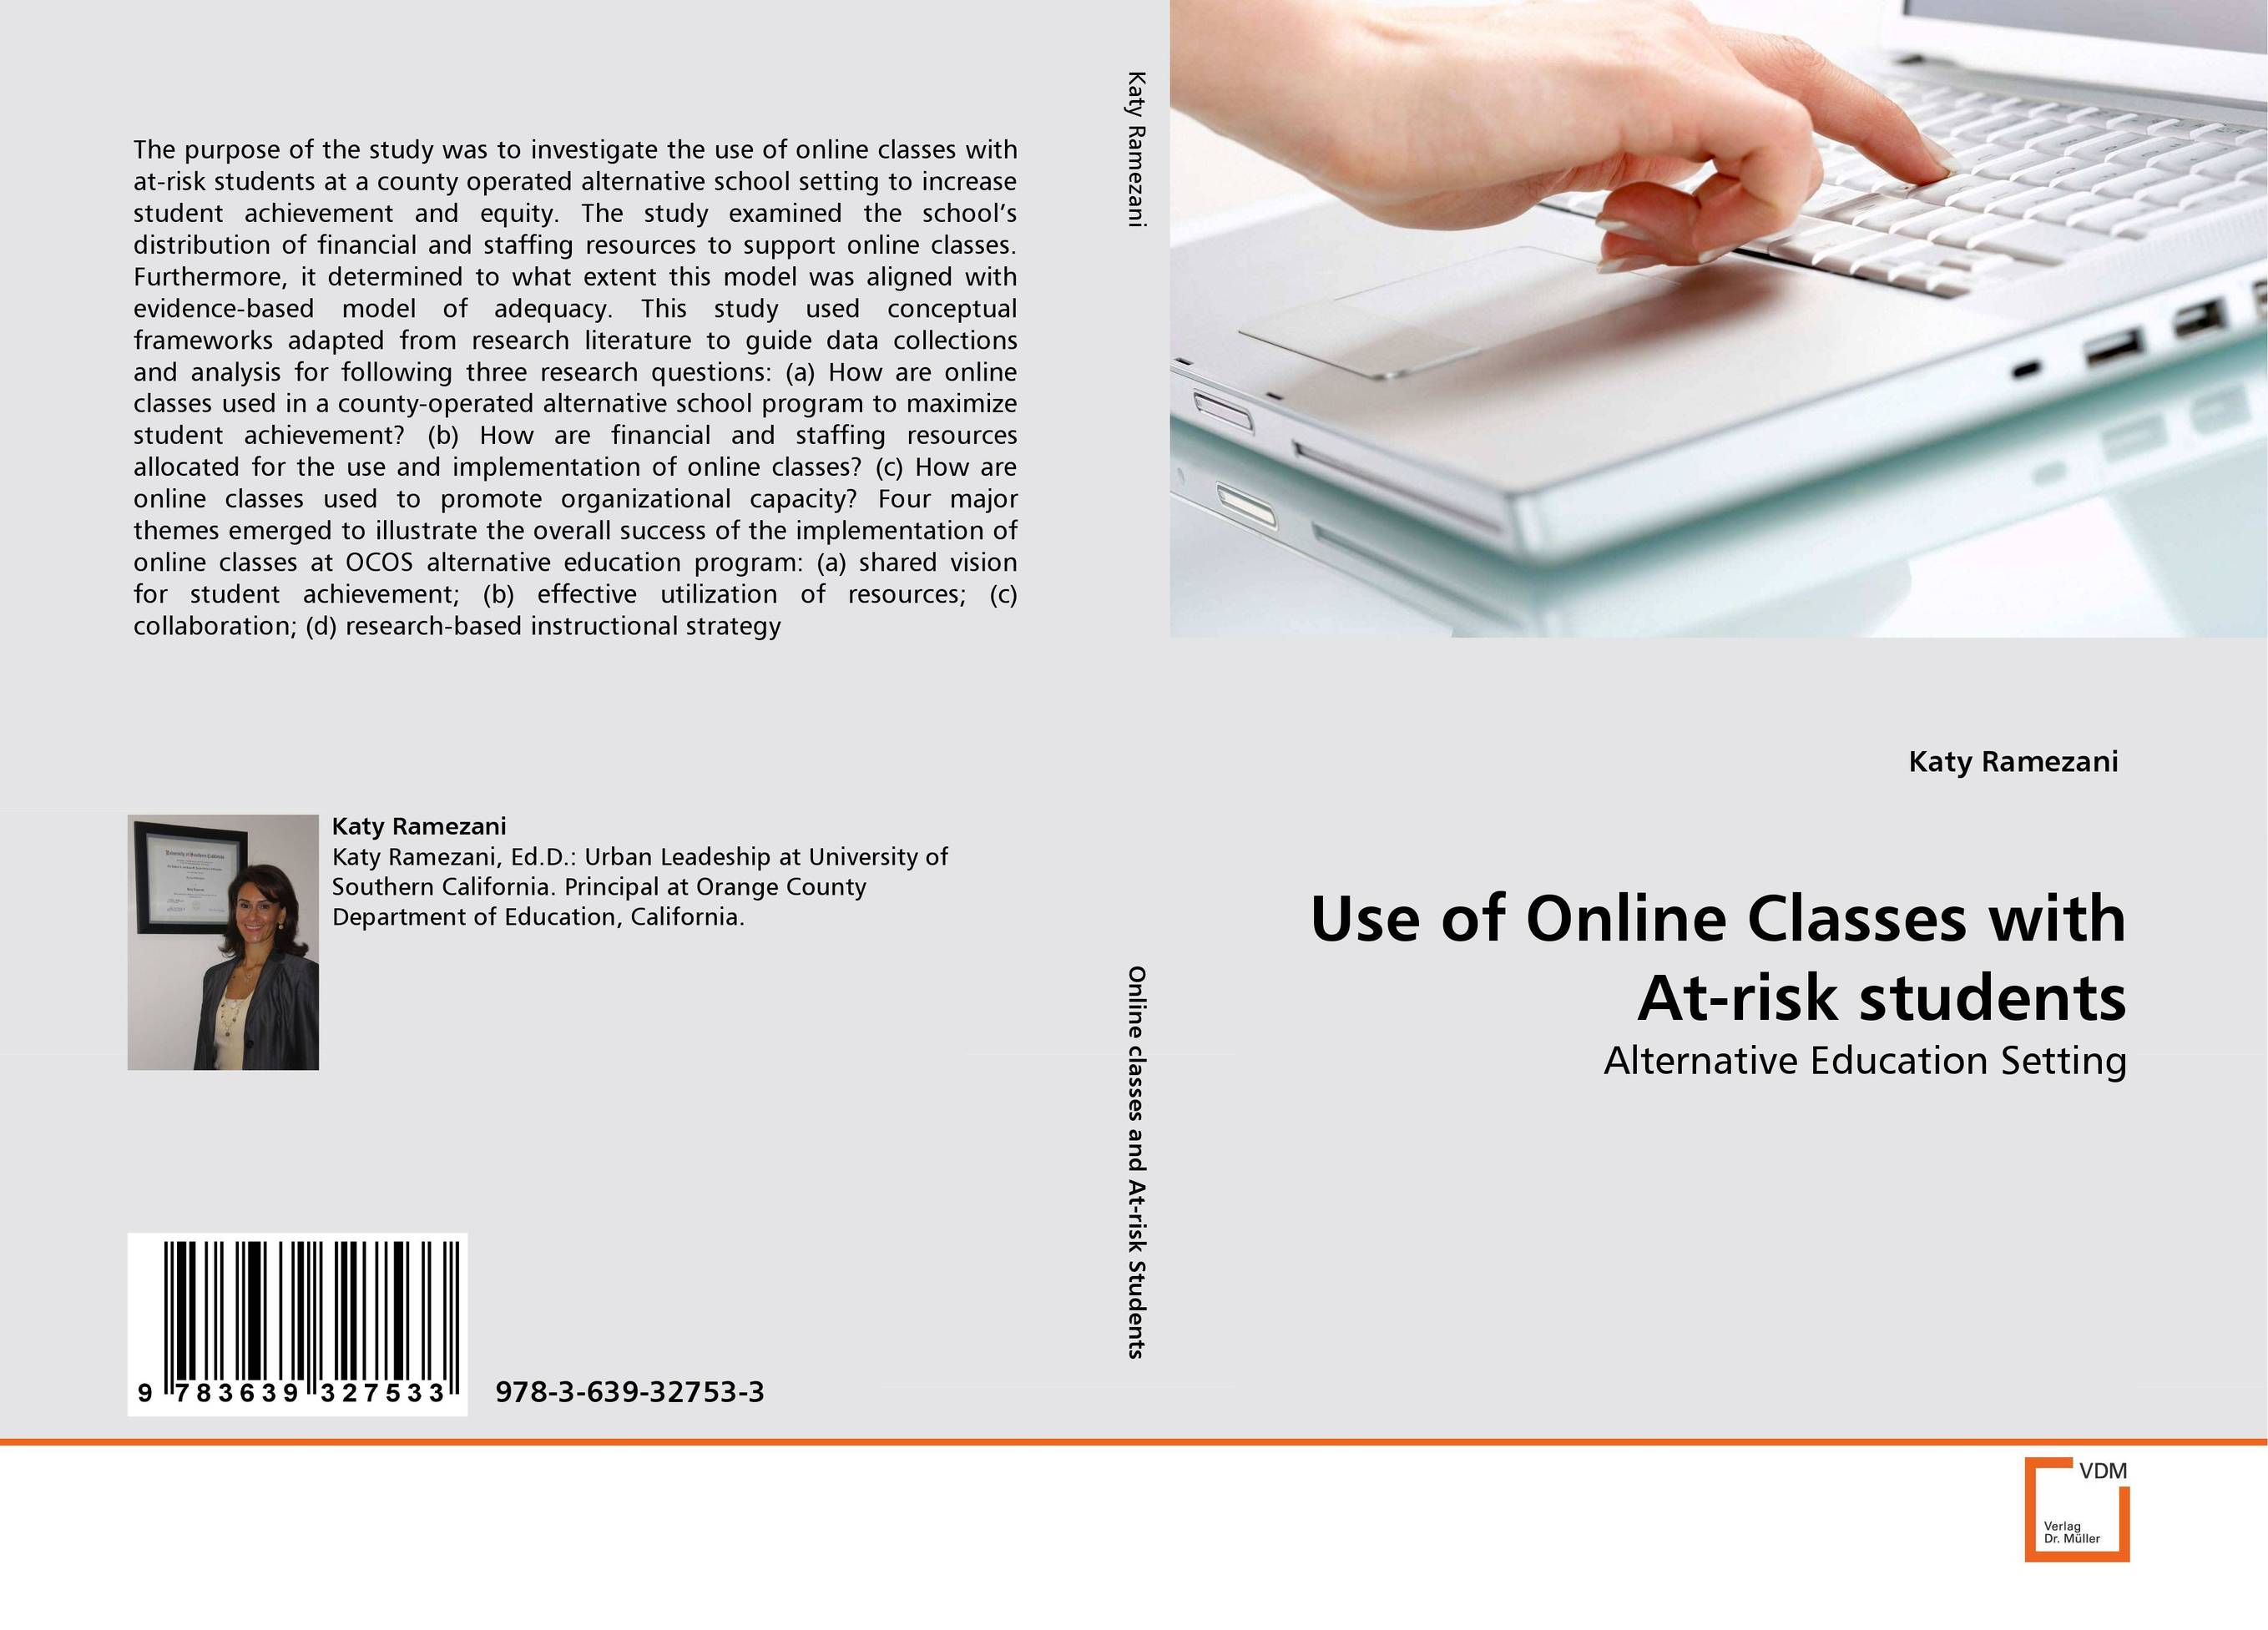 Use of Online Classes with At-risk students creating alternative history the online poetic responses to 9 11